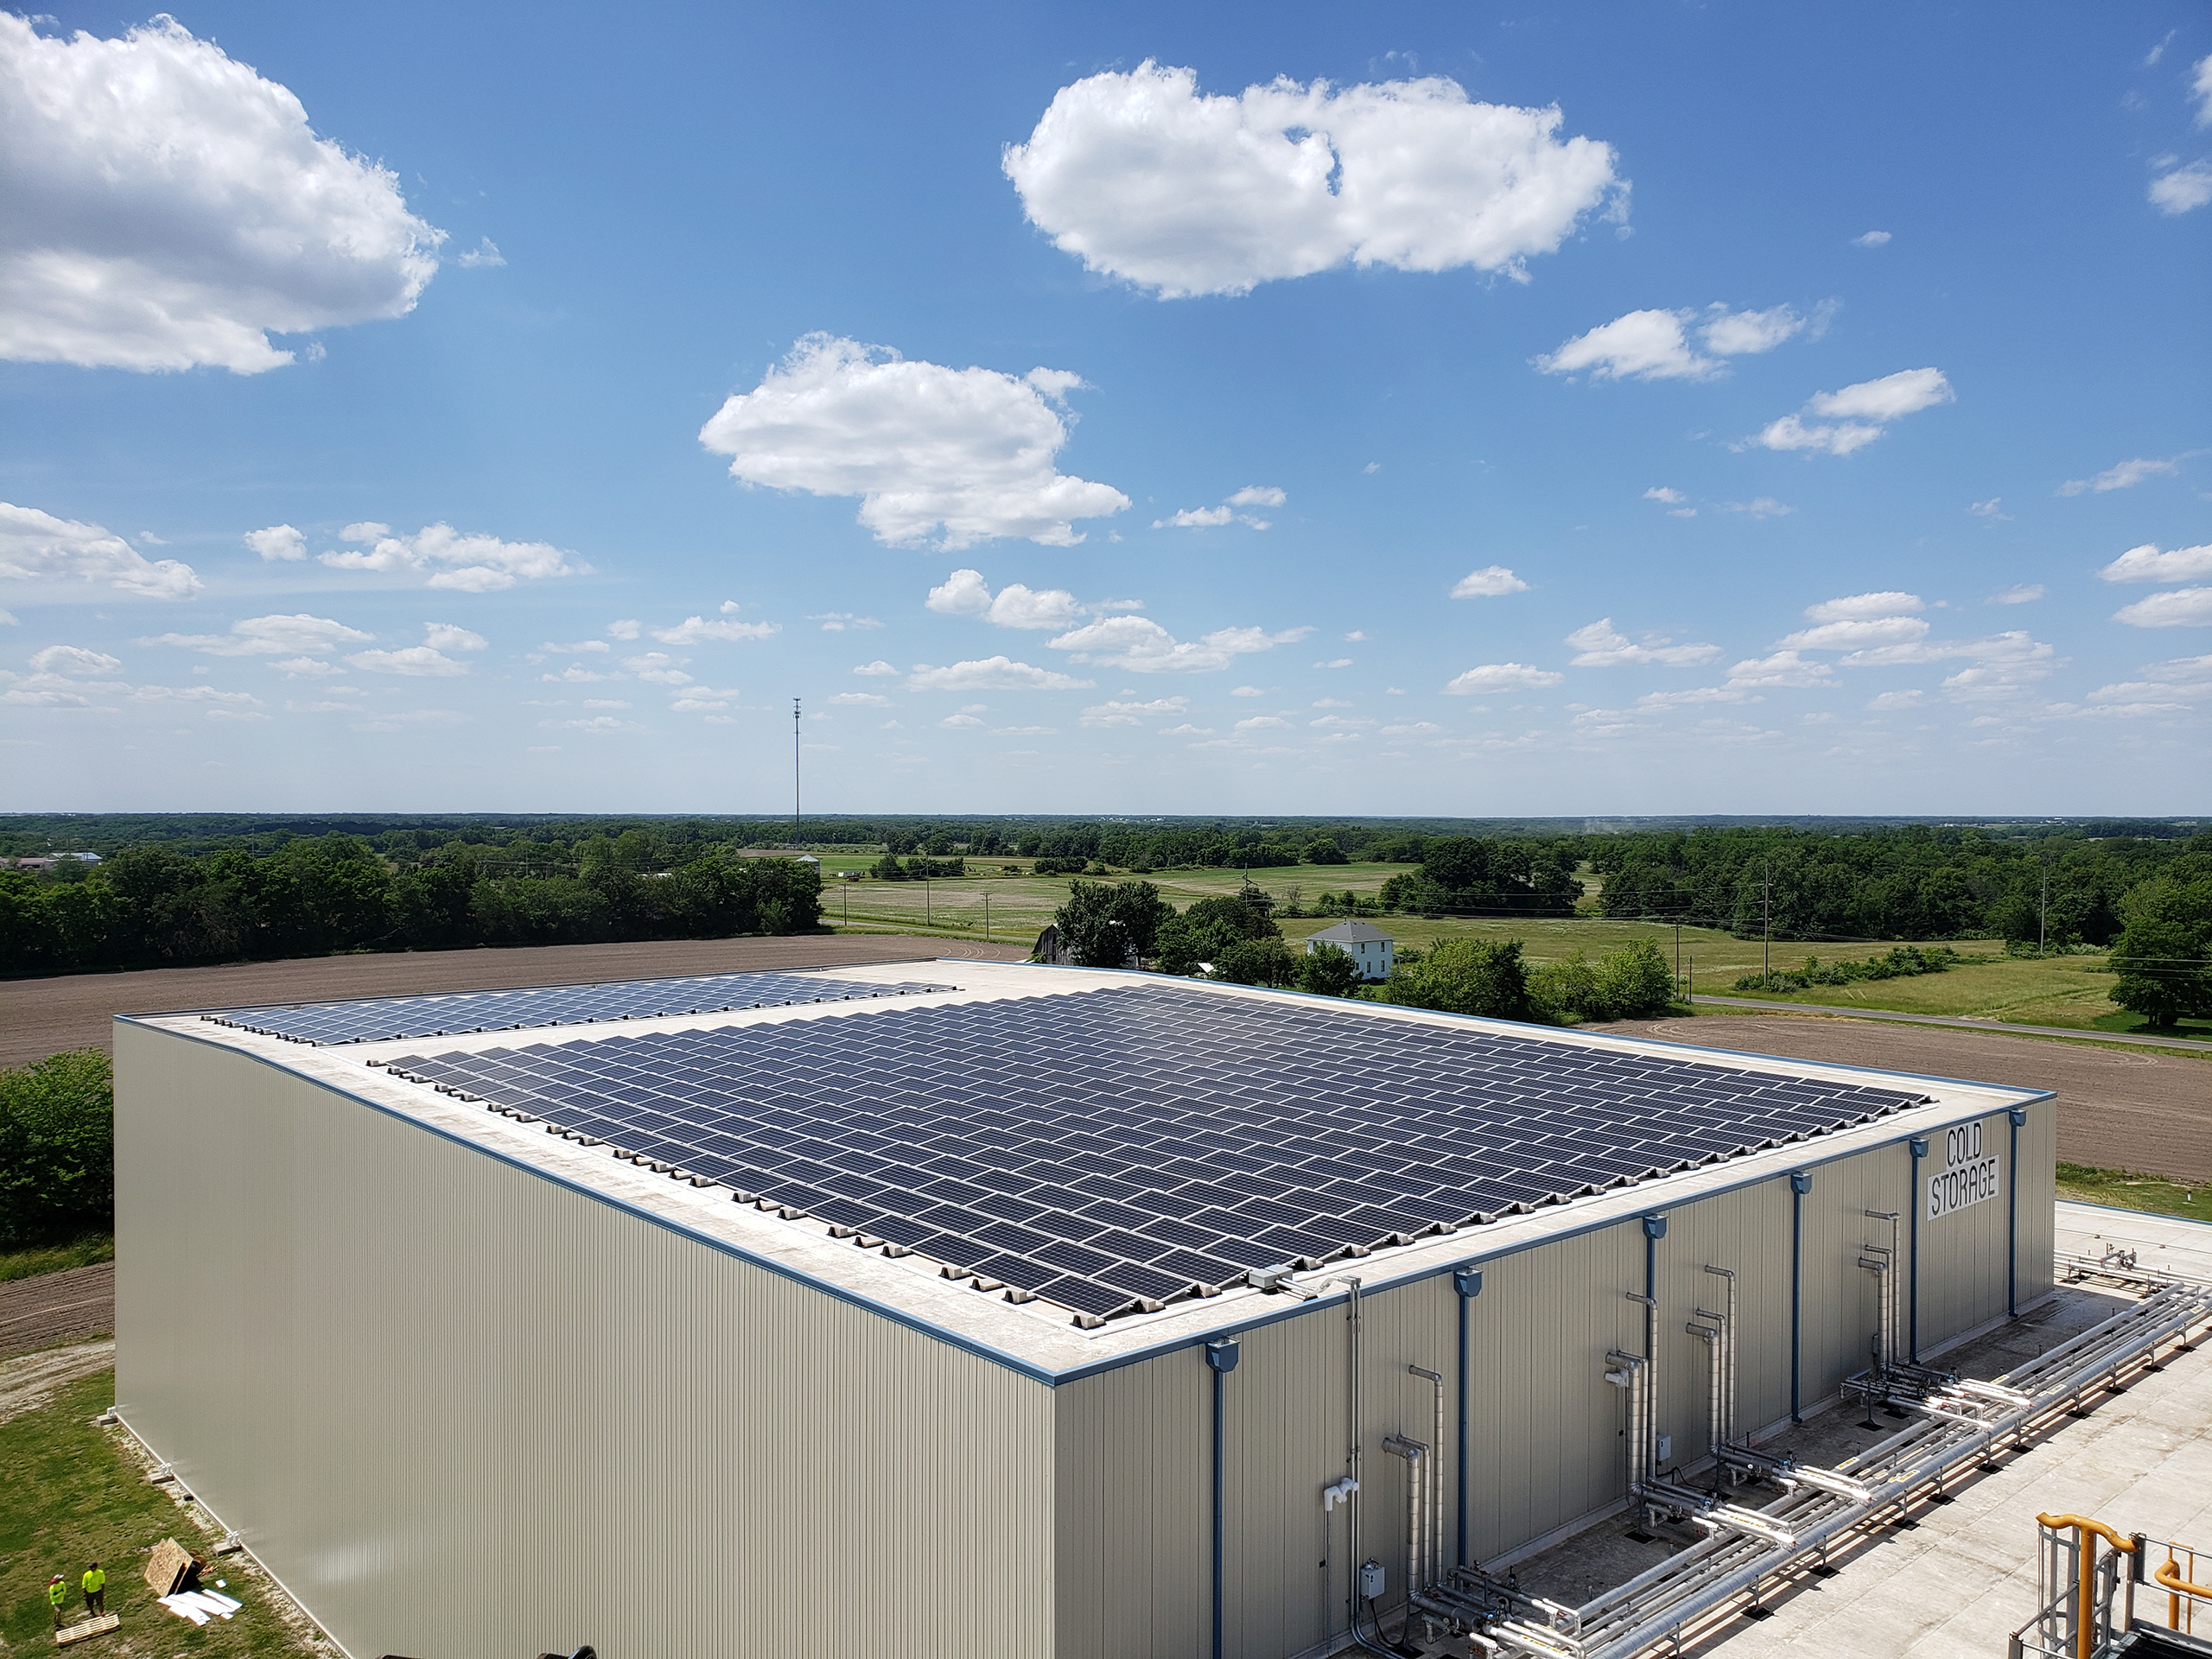 A field of solar panels are seen covering the roof of a large metal commercial building. The sky above is a bright clear blue with a sprinkling of puffy white clouds.